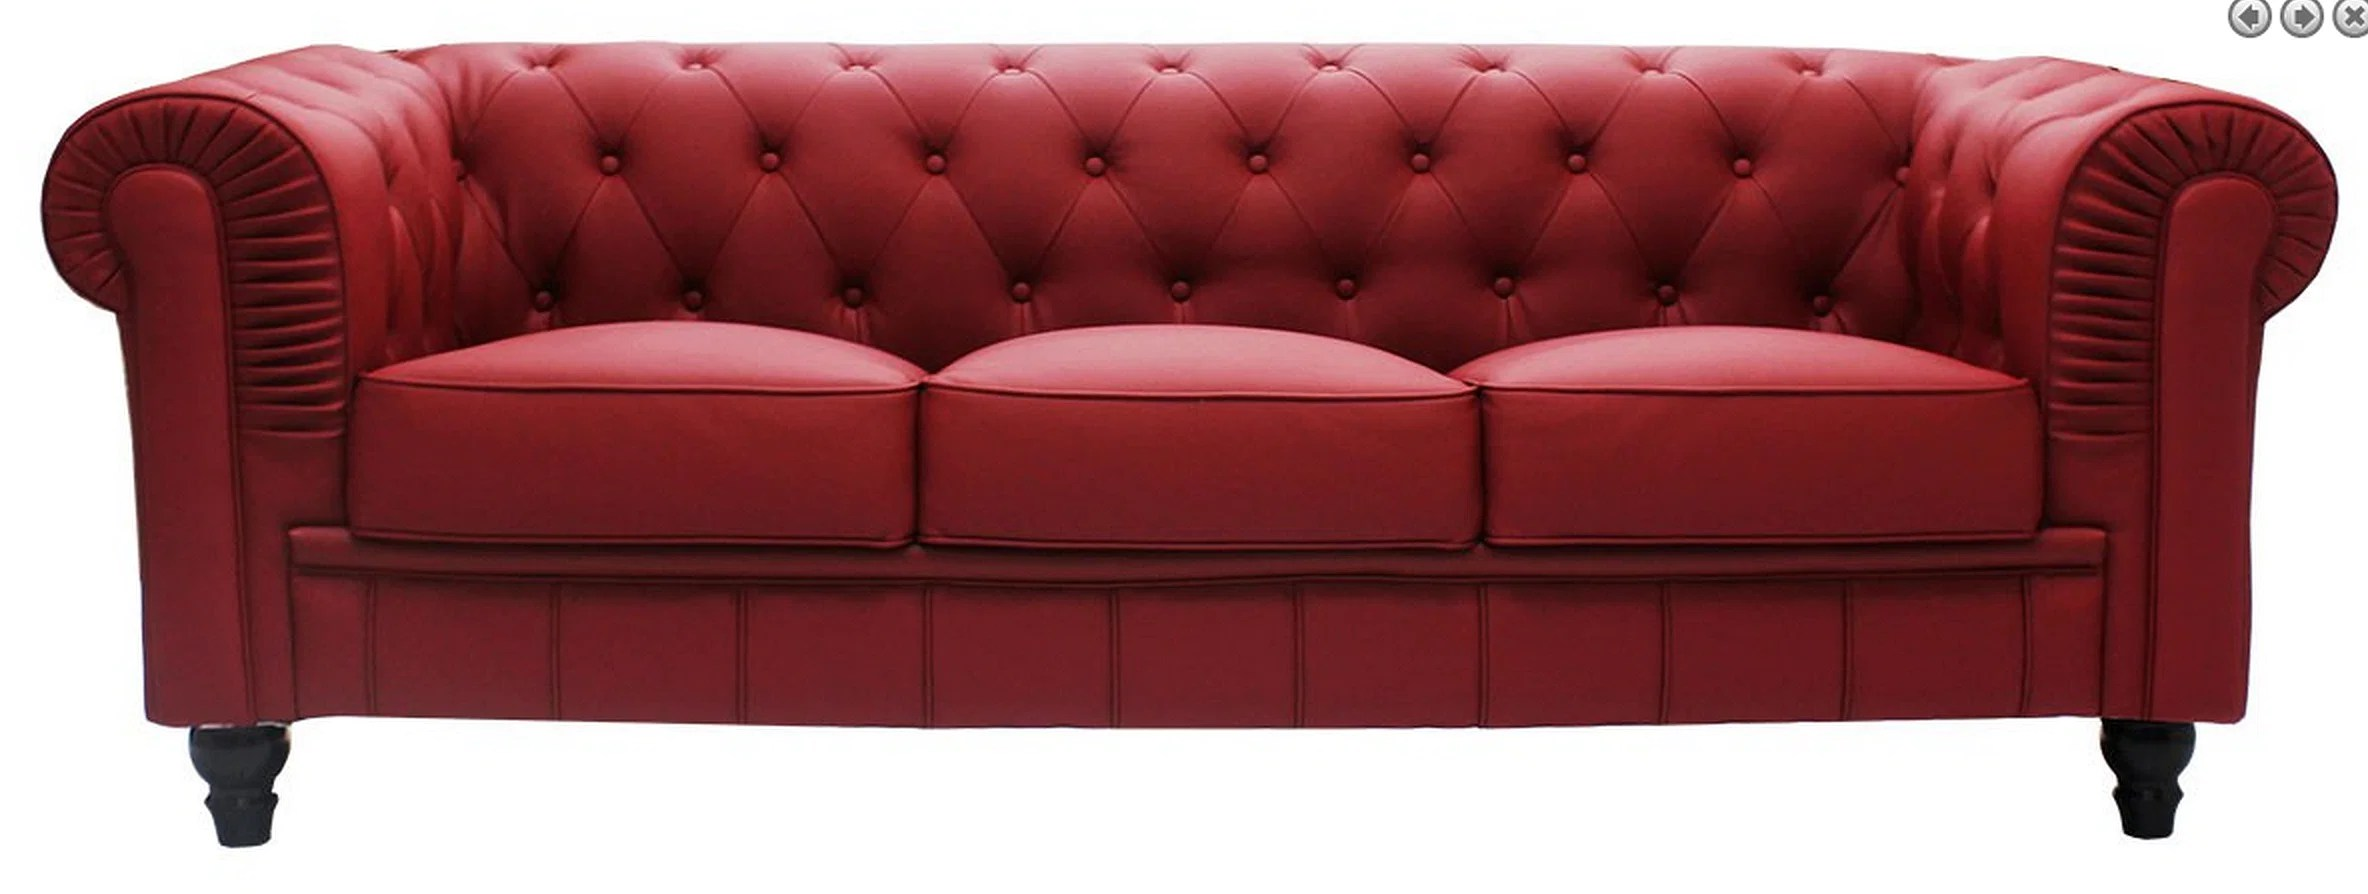 long sofa bed ferrari red big greige 10 sofas under 1000 that you can buy online home